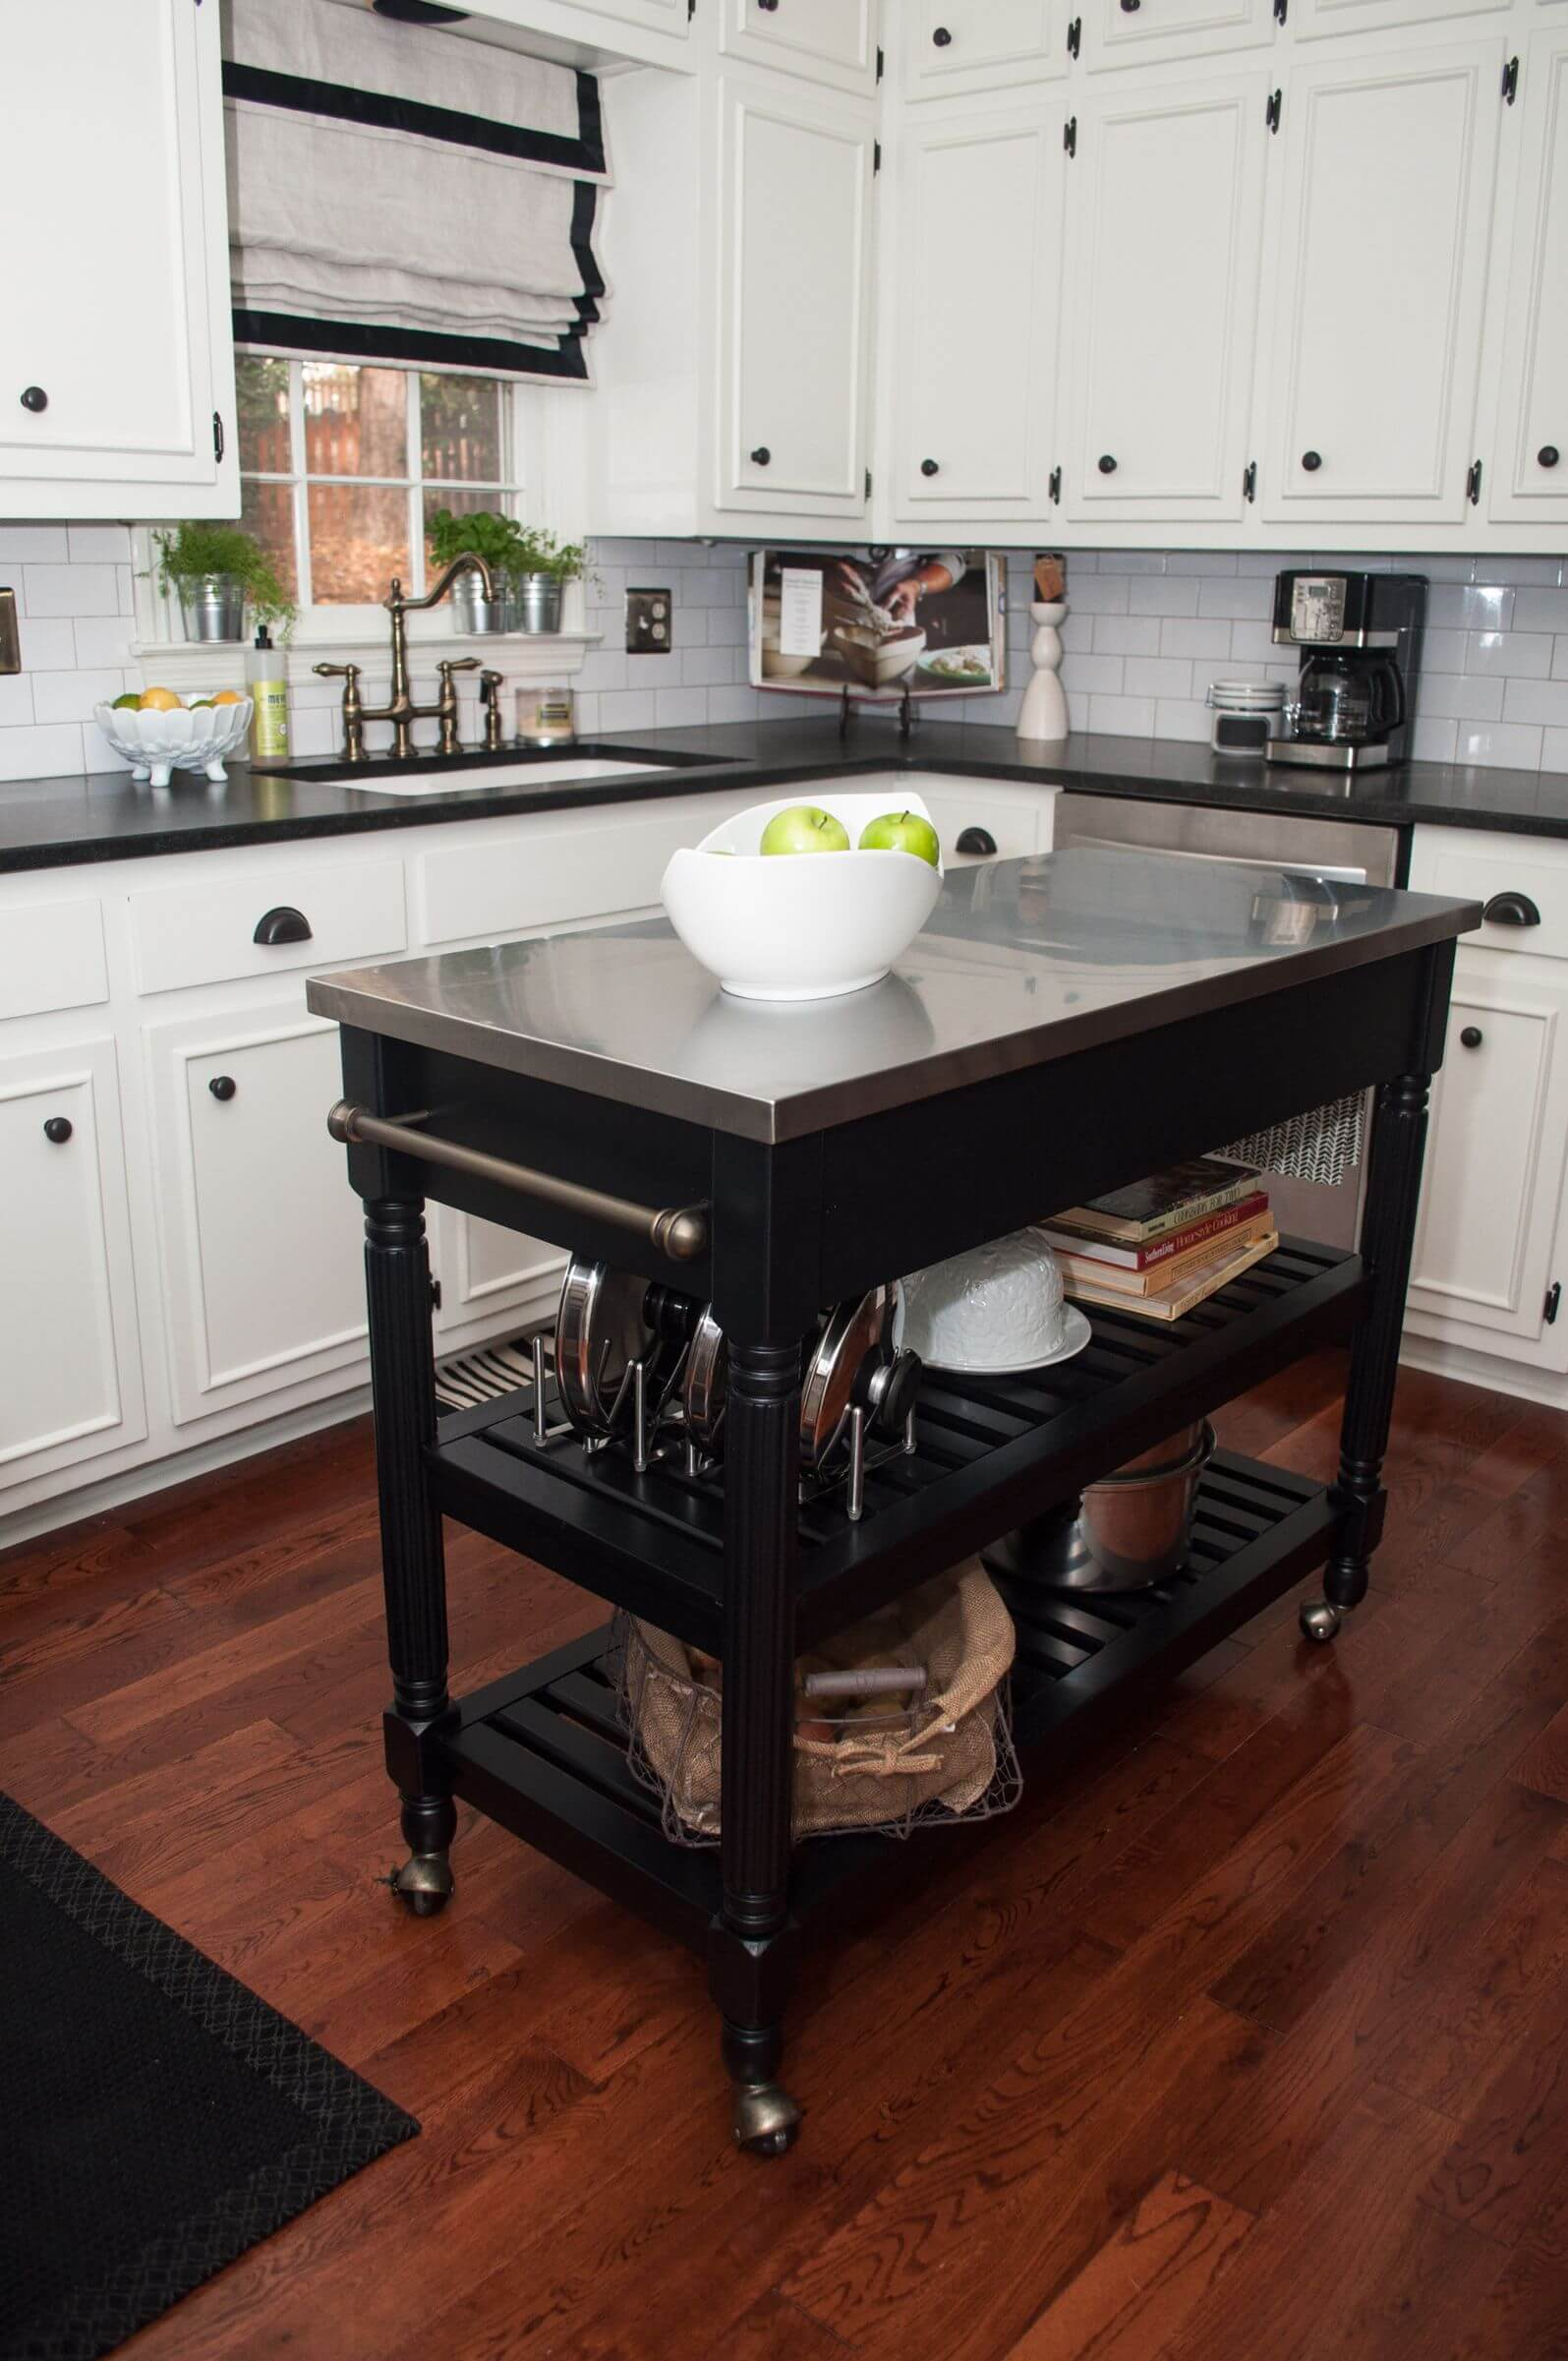 60 types of small kitchen islands & carts on wheels (2018)